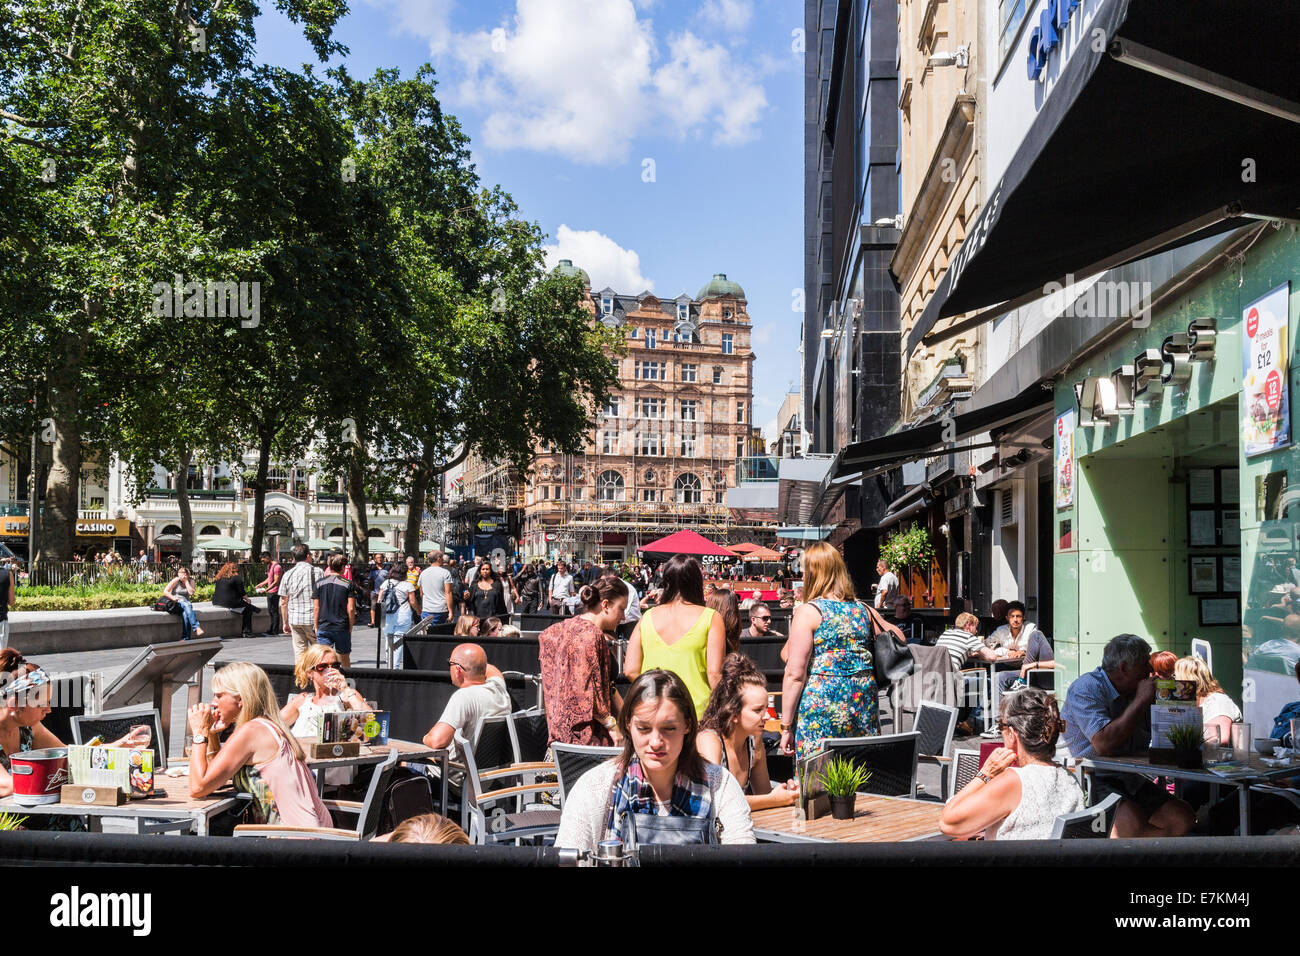 Outside dinning on Leicester square - London - Stock Image